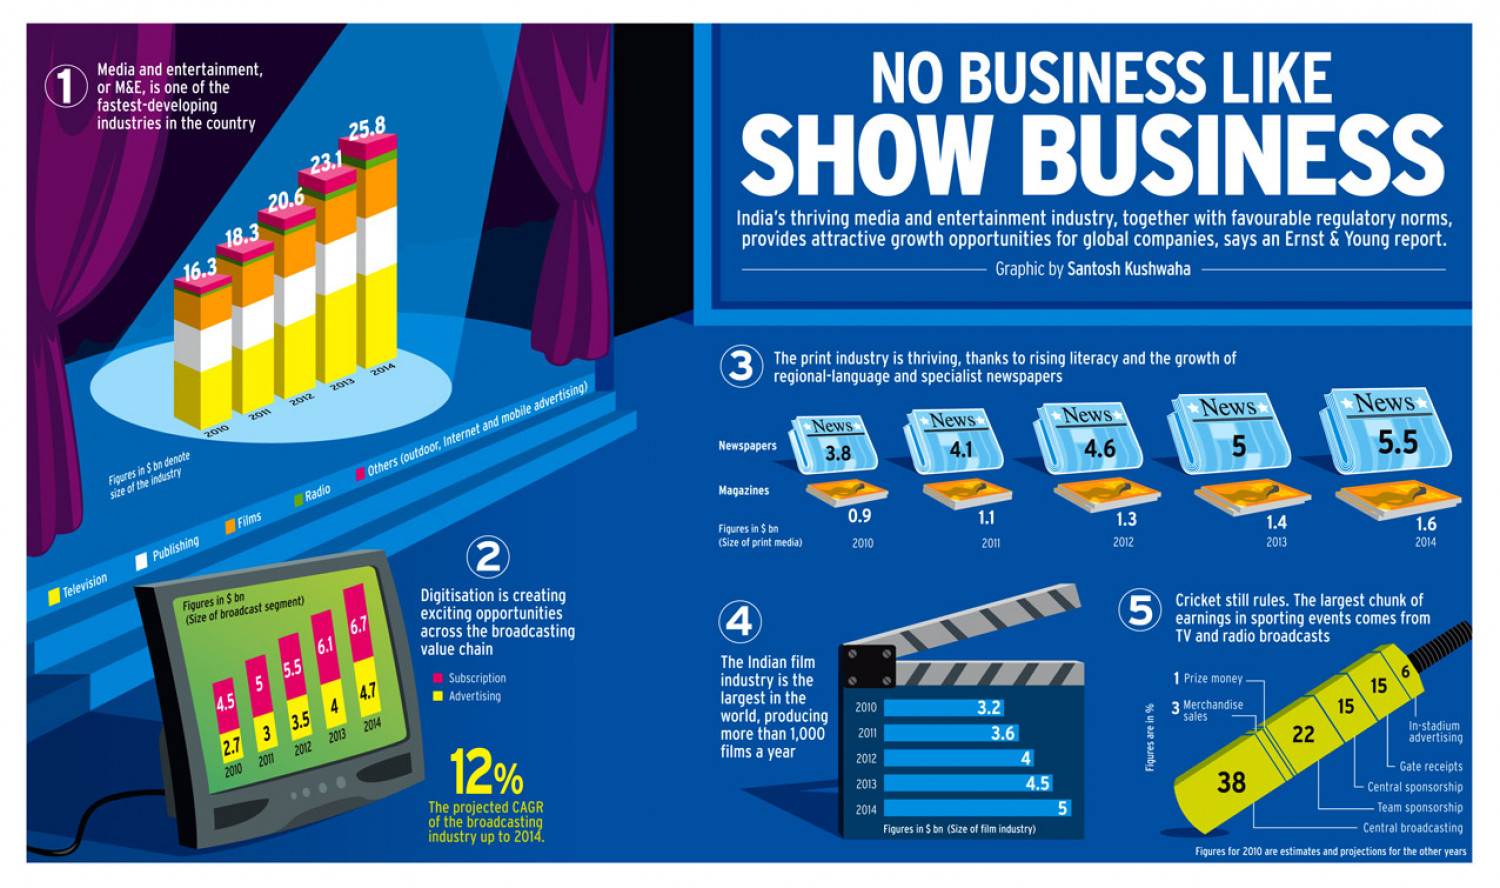 NO BUSINESS LIKE SHOW BUSINESS Infographic